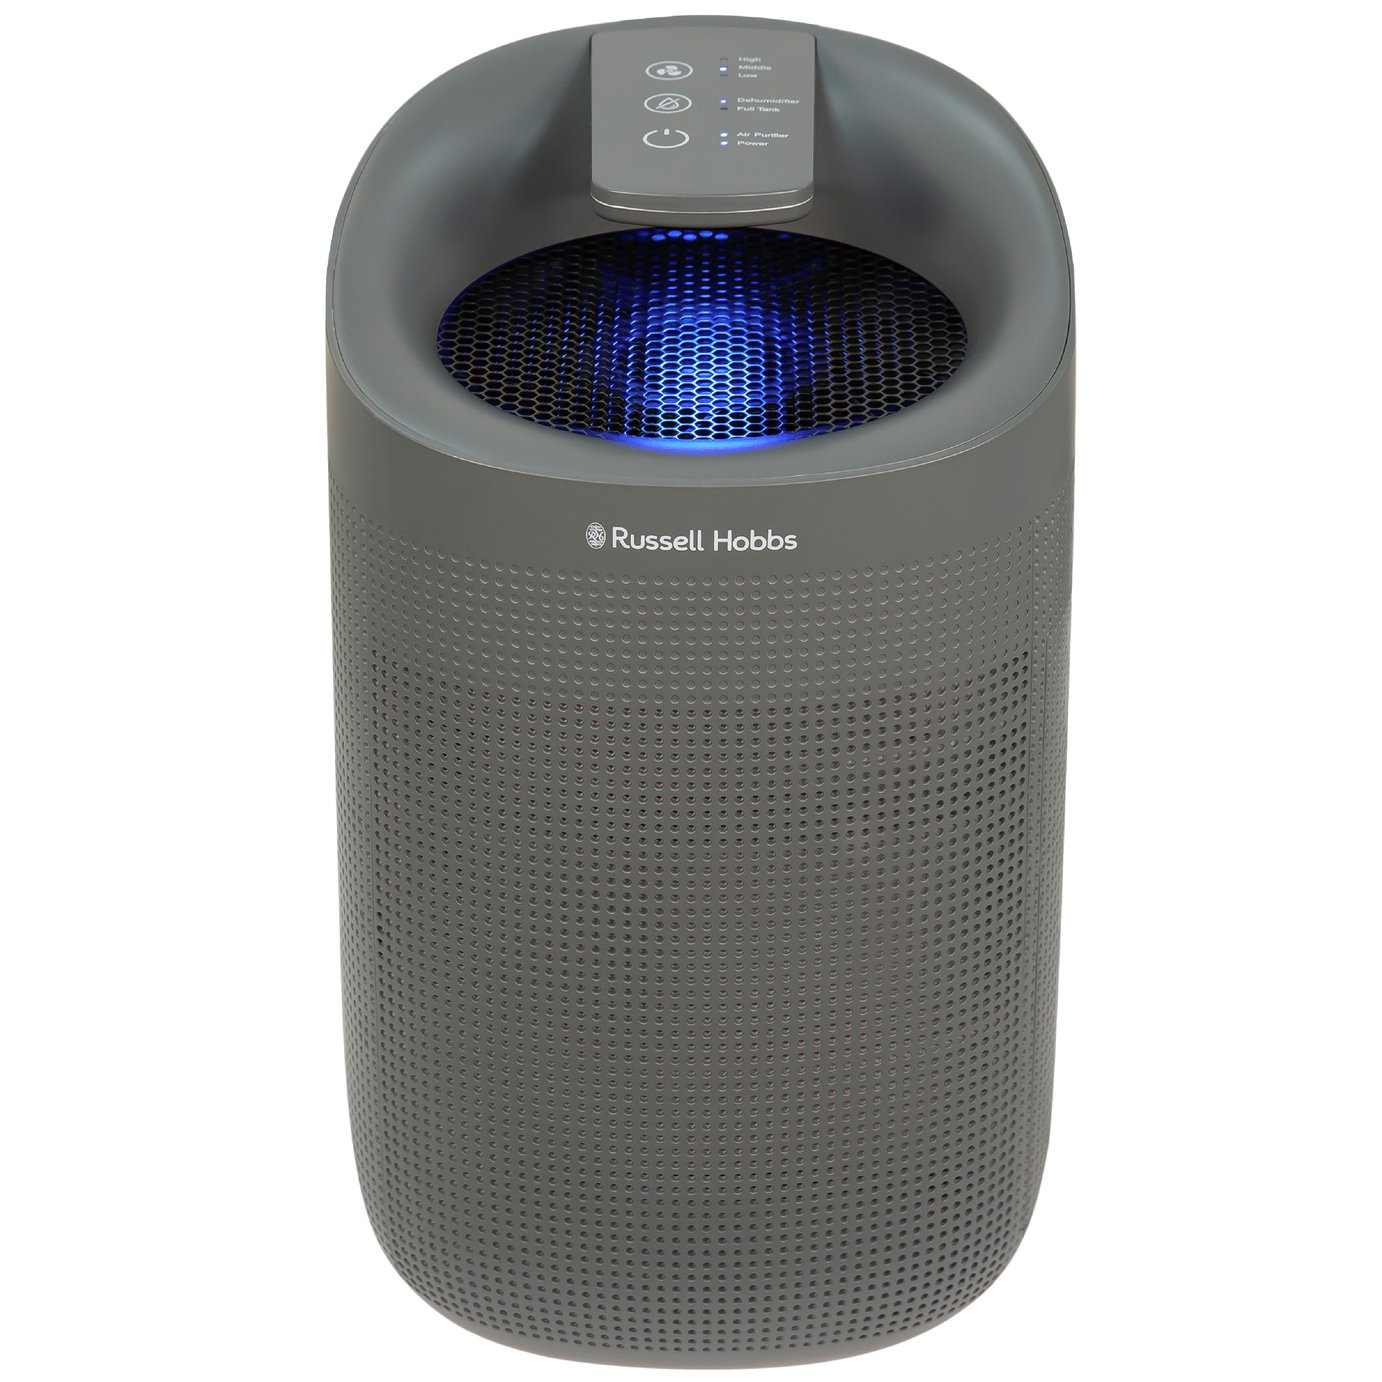 Russell Hobbs RHDH1101G Dehumidifier & Air Purifier-Grey